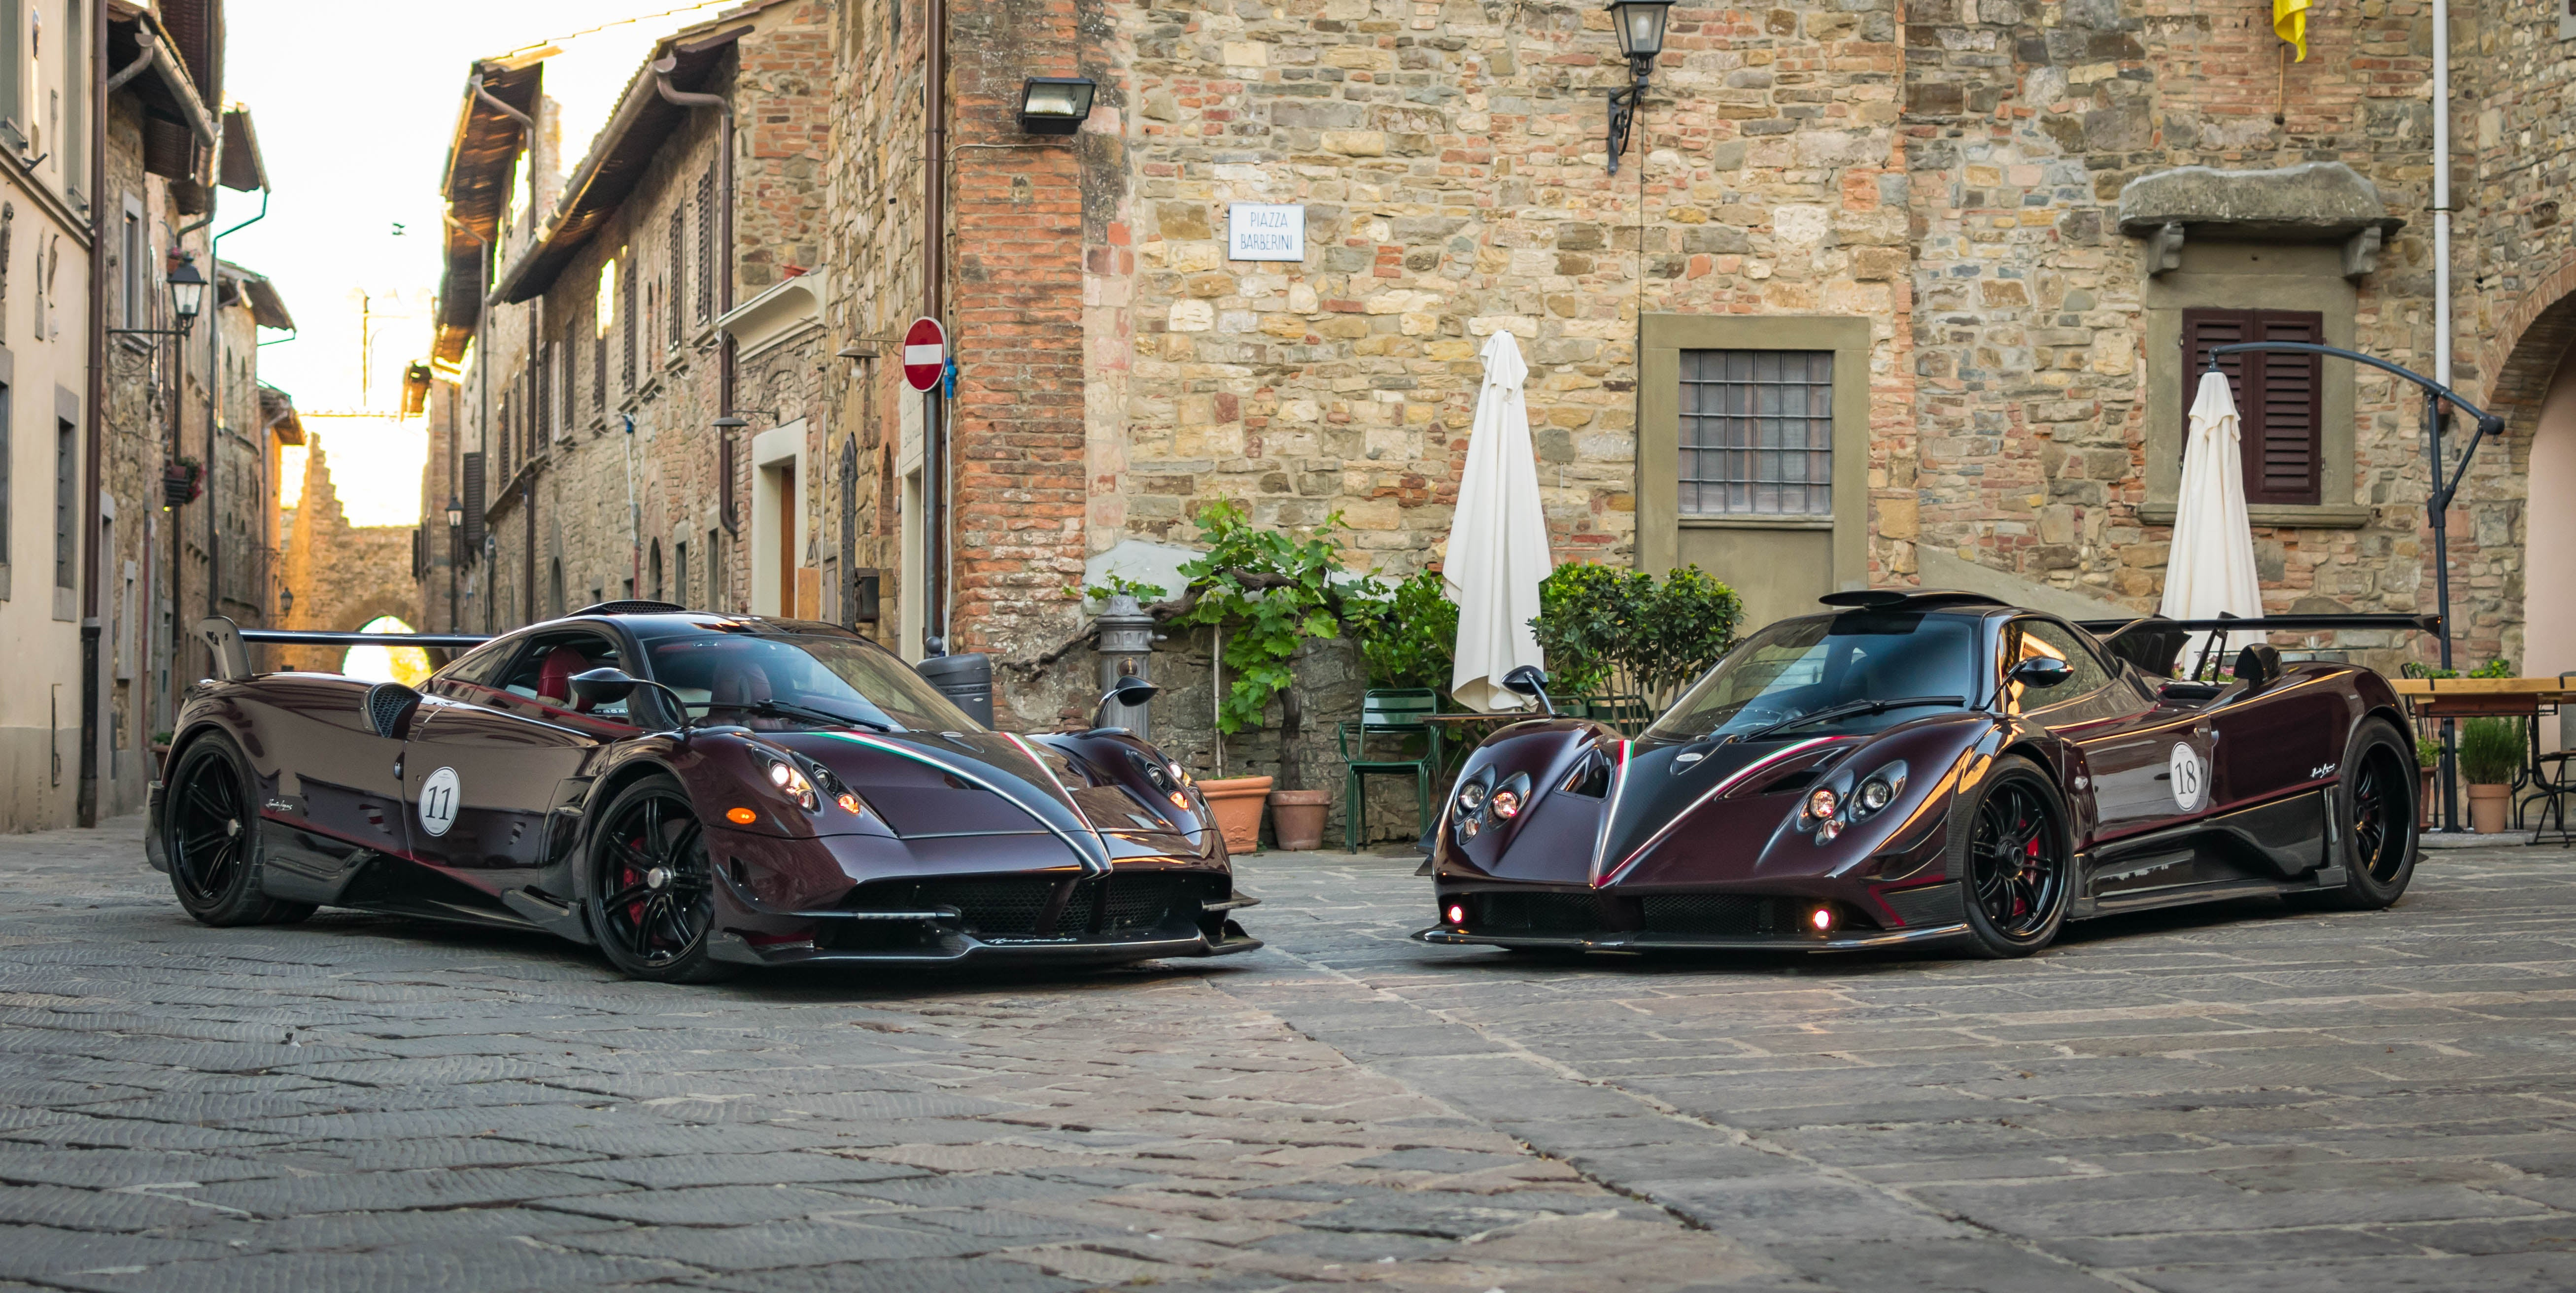 A Pagani Rally In Italy Puts All Other Car Meets To Shame   Gizmodo